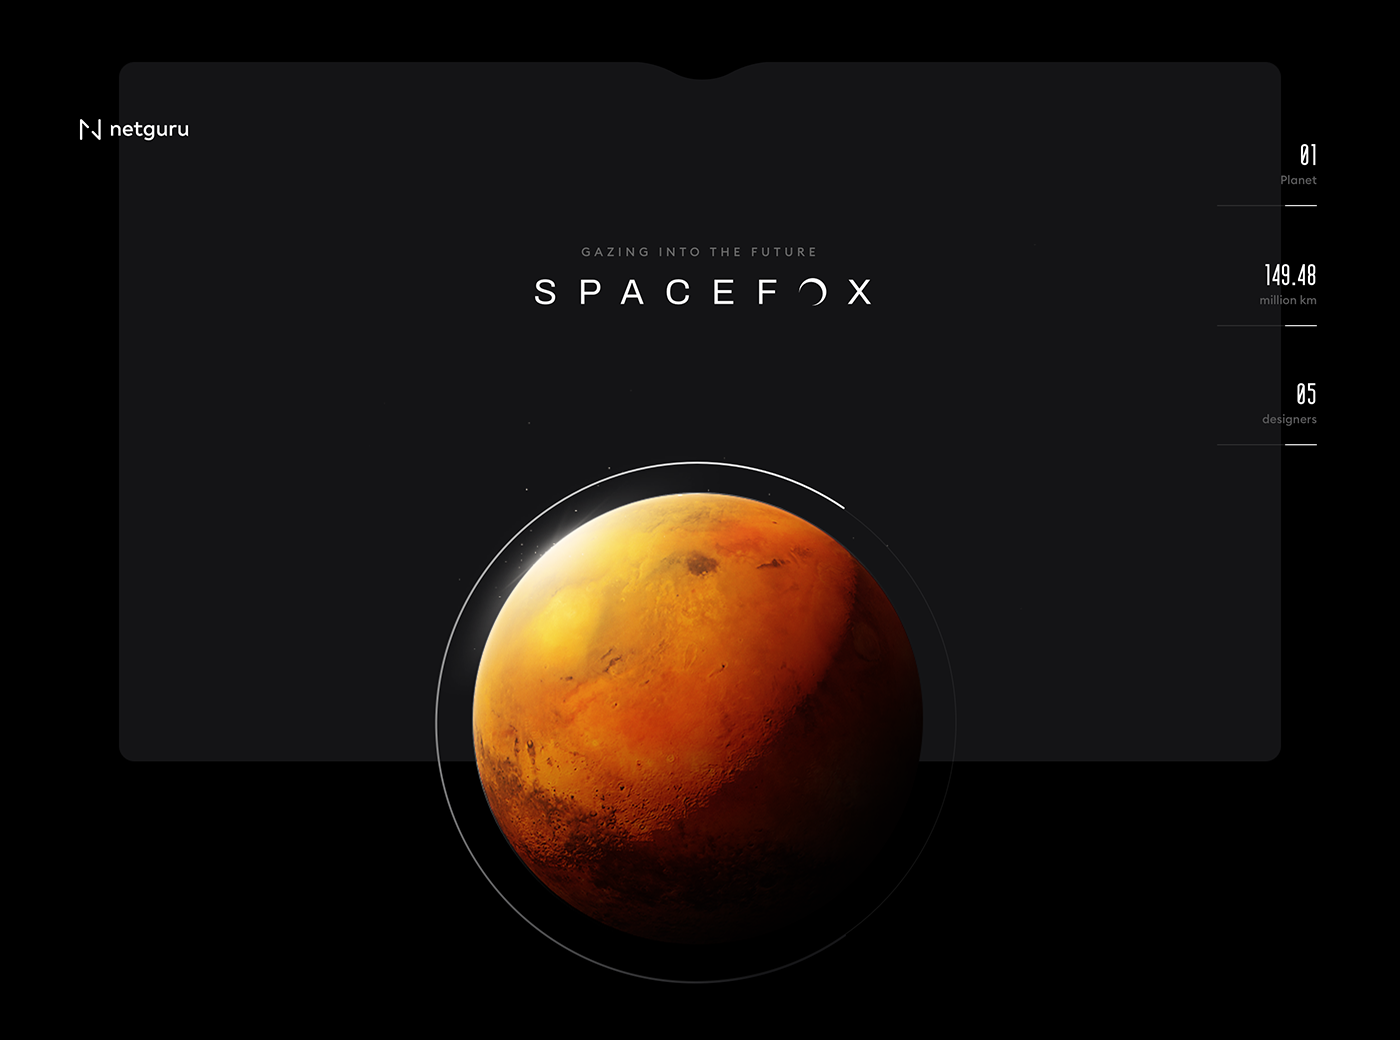 AR falconx mars real estates Red Planet rockets spacex universe vr